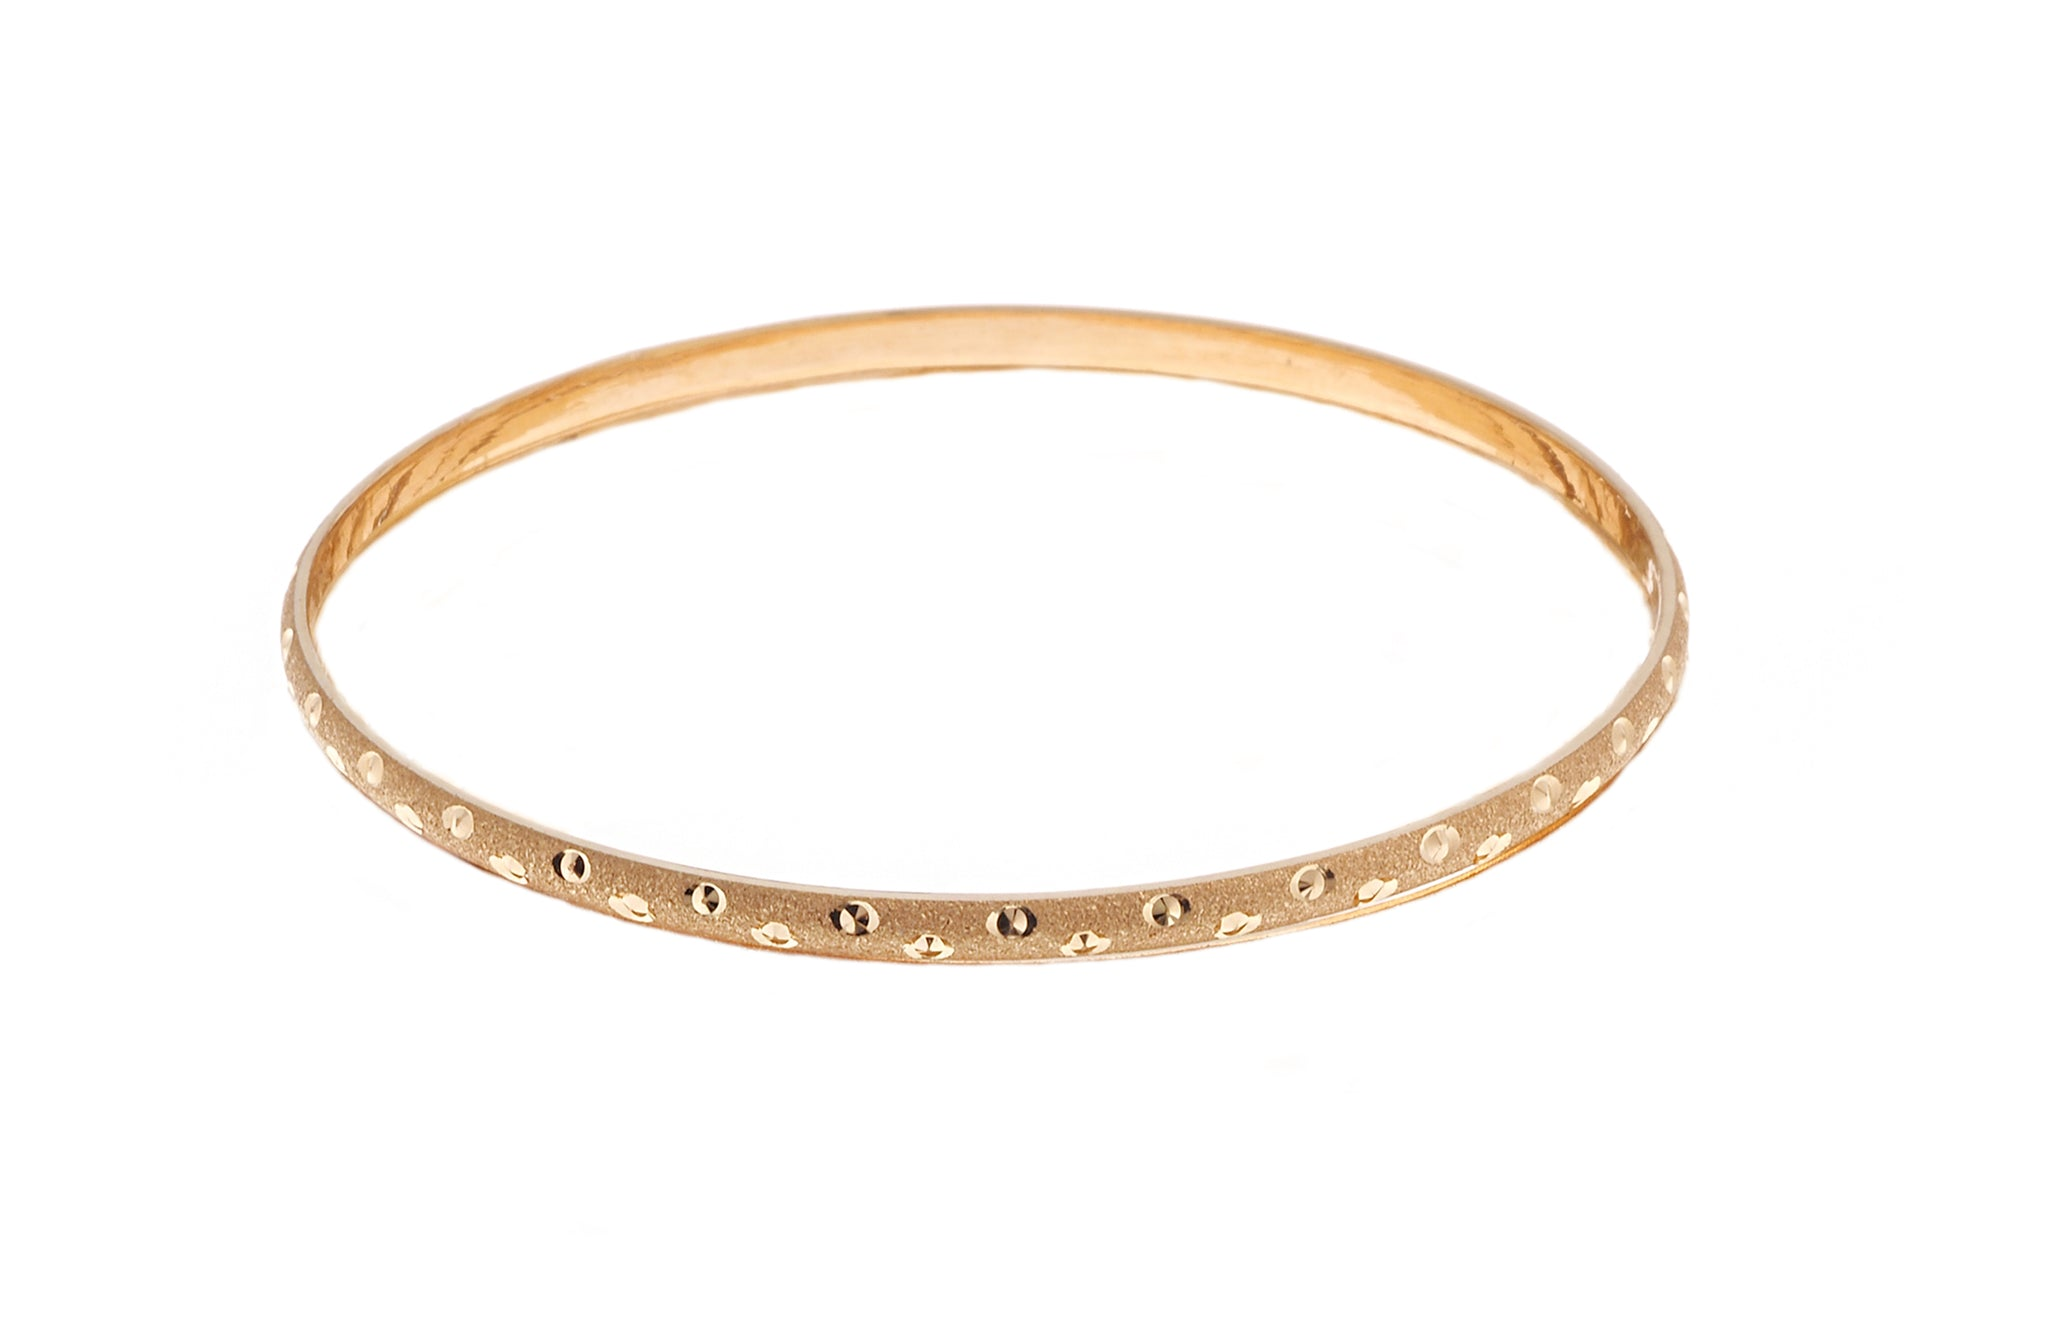 22ct Gold Satin Finish Bangles with diamond cut & rhodium design (B-6270)